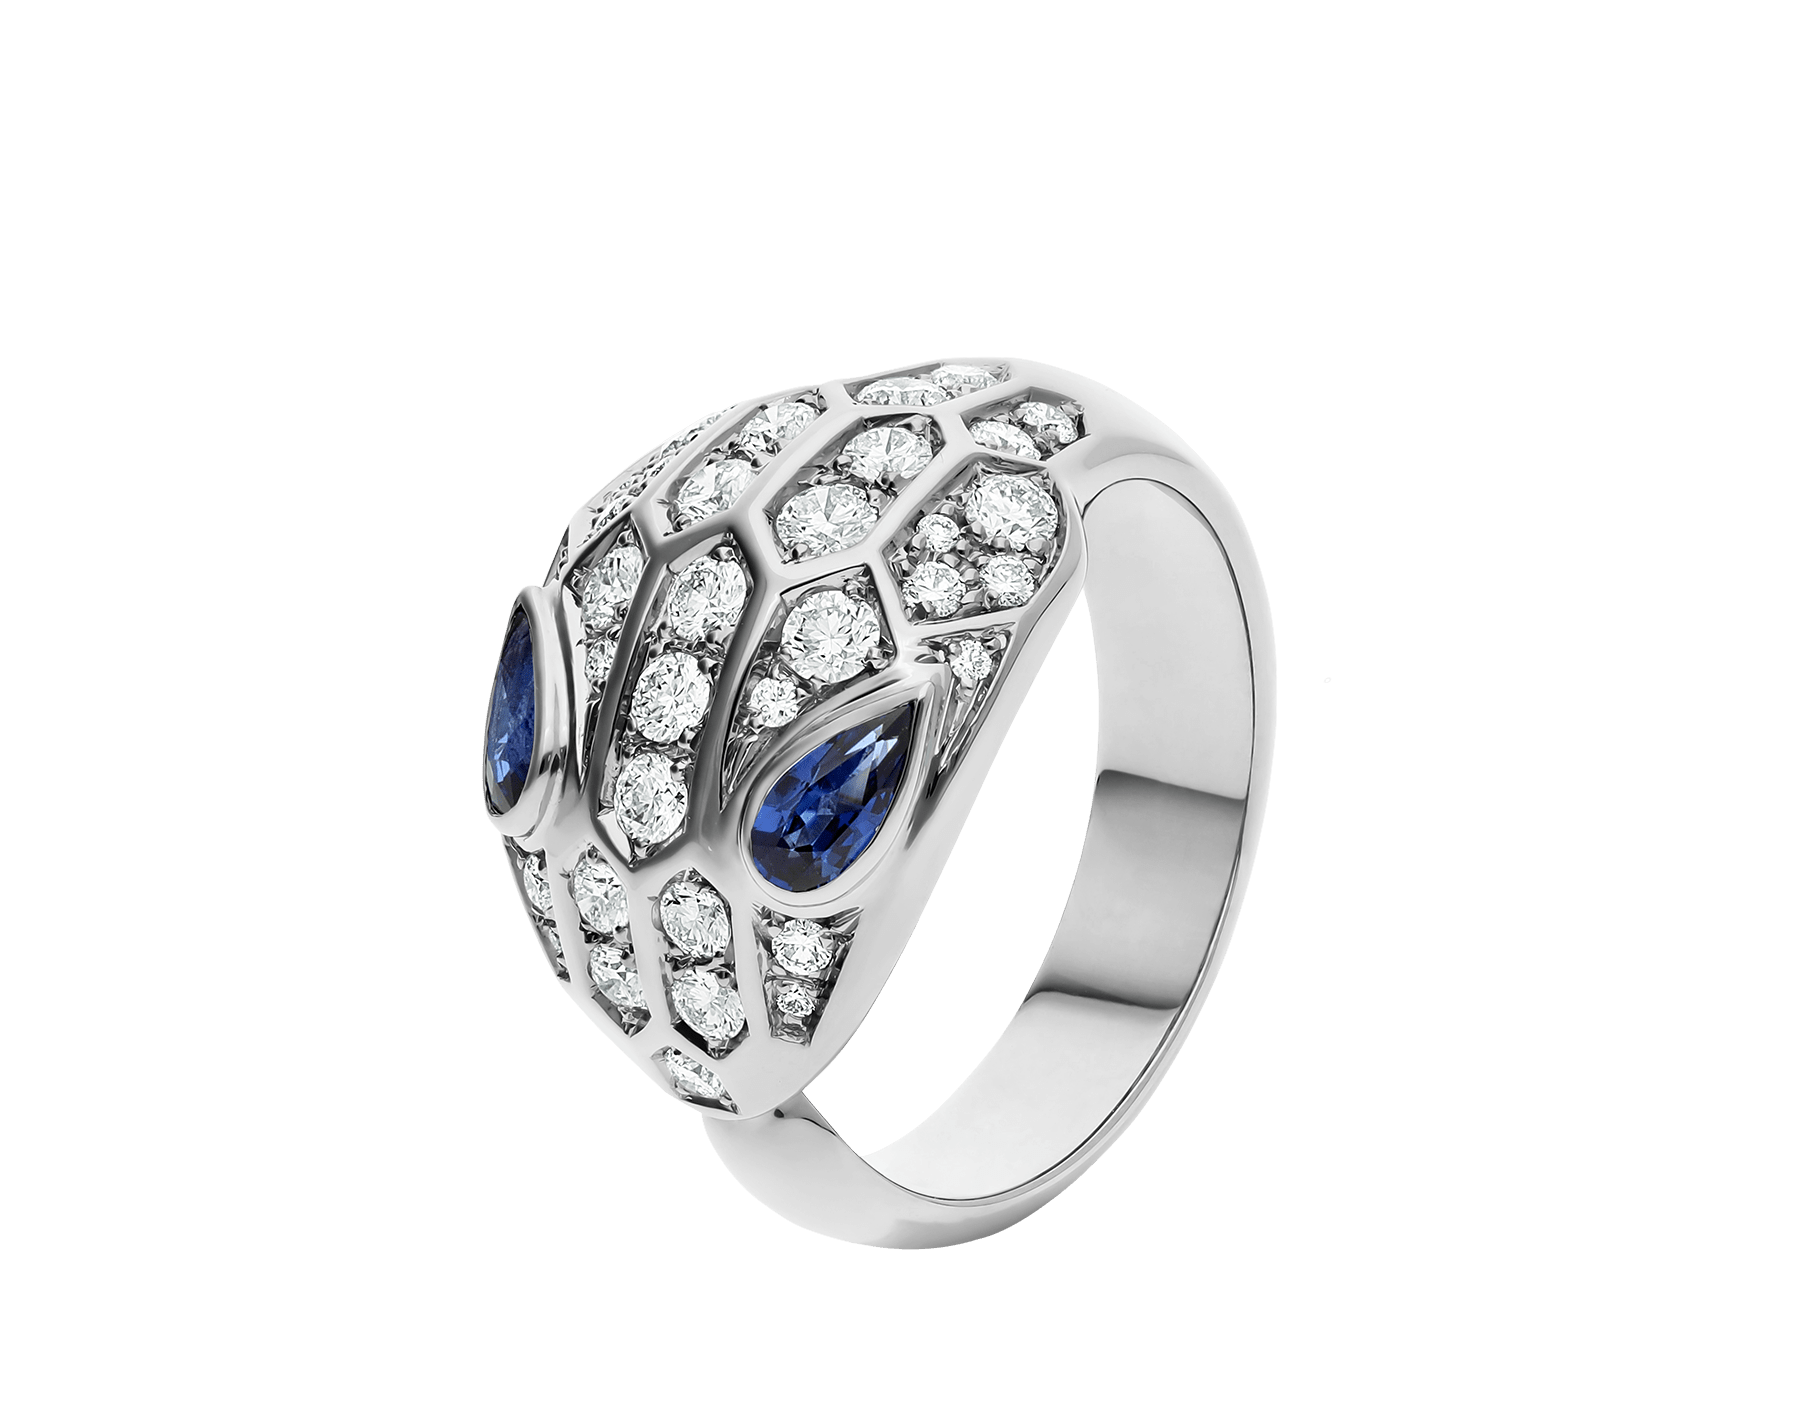 Serpenti ring in 18 kt white gold set with blue sapphire eyes (0.43 ct) and pavé diamonds (0.76 ct). AN857879 image 1